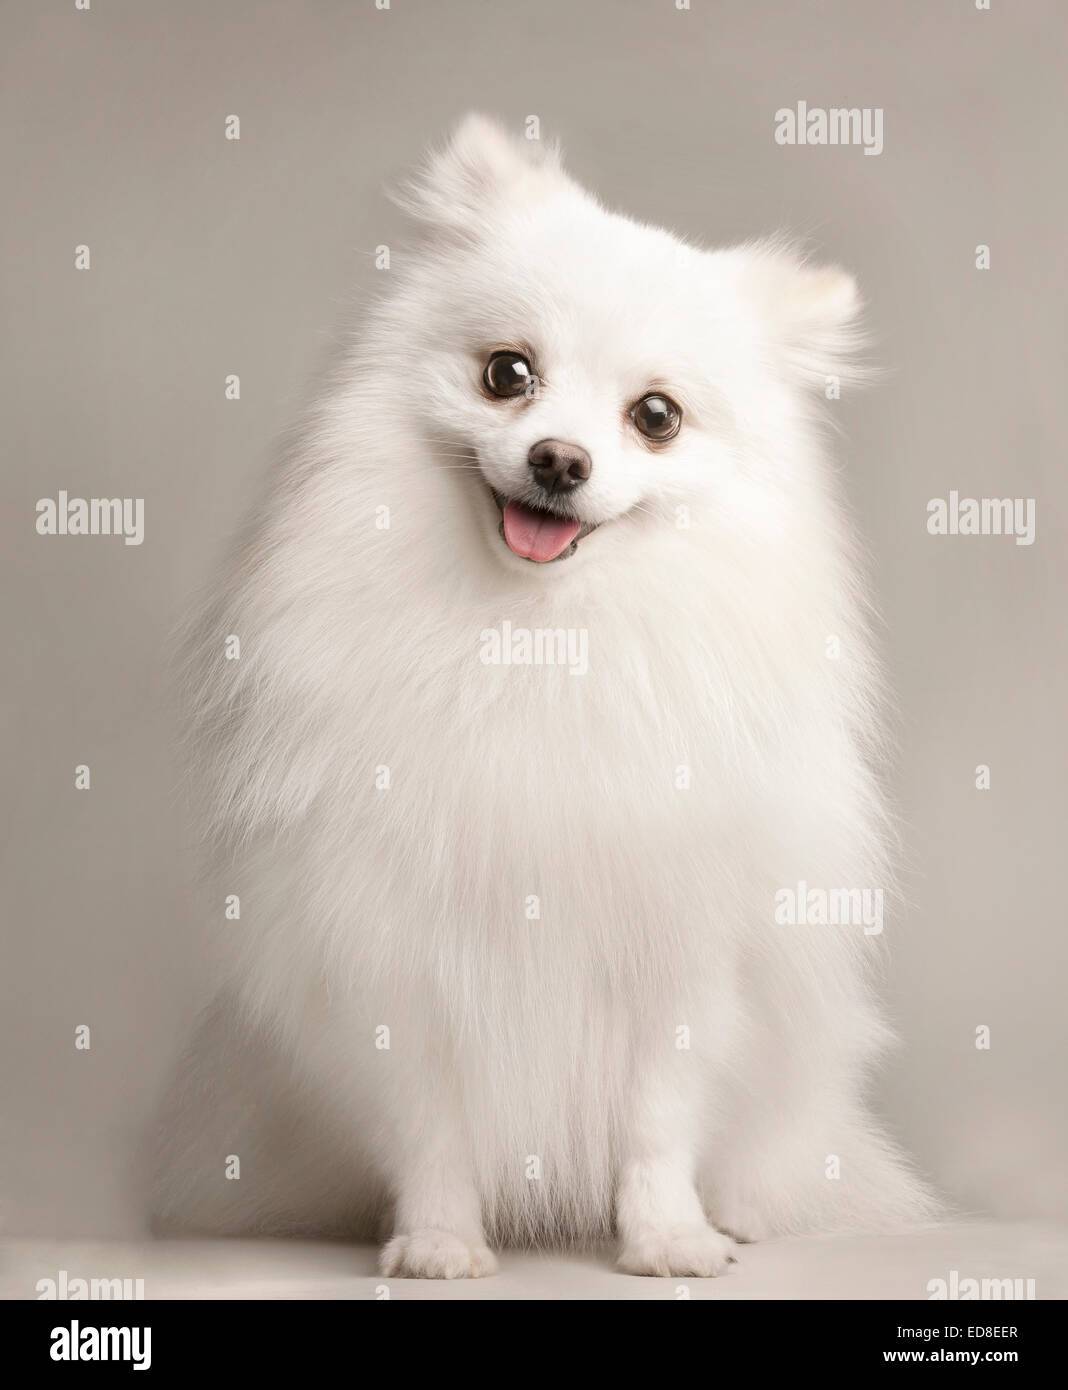 A portrait of a happy white Pomeranian in a white studio background. - Stock Image